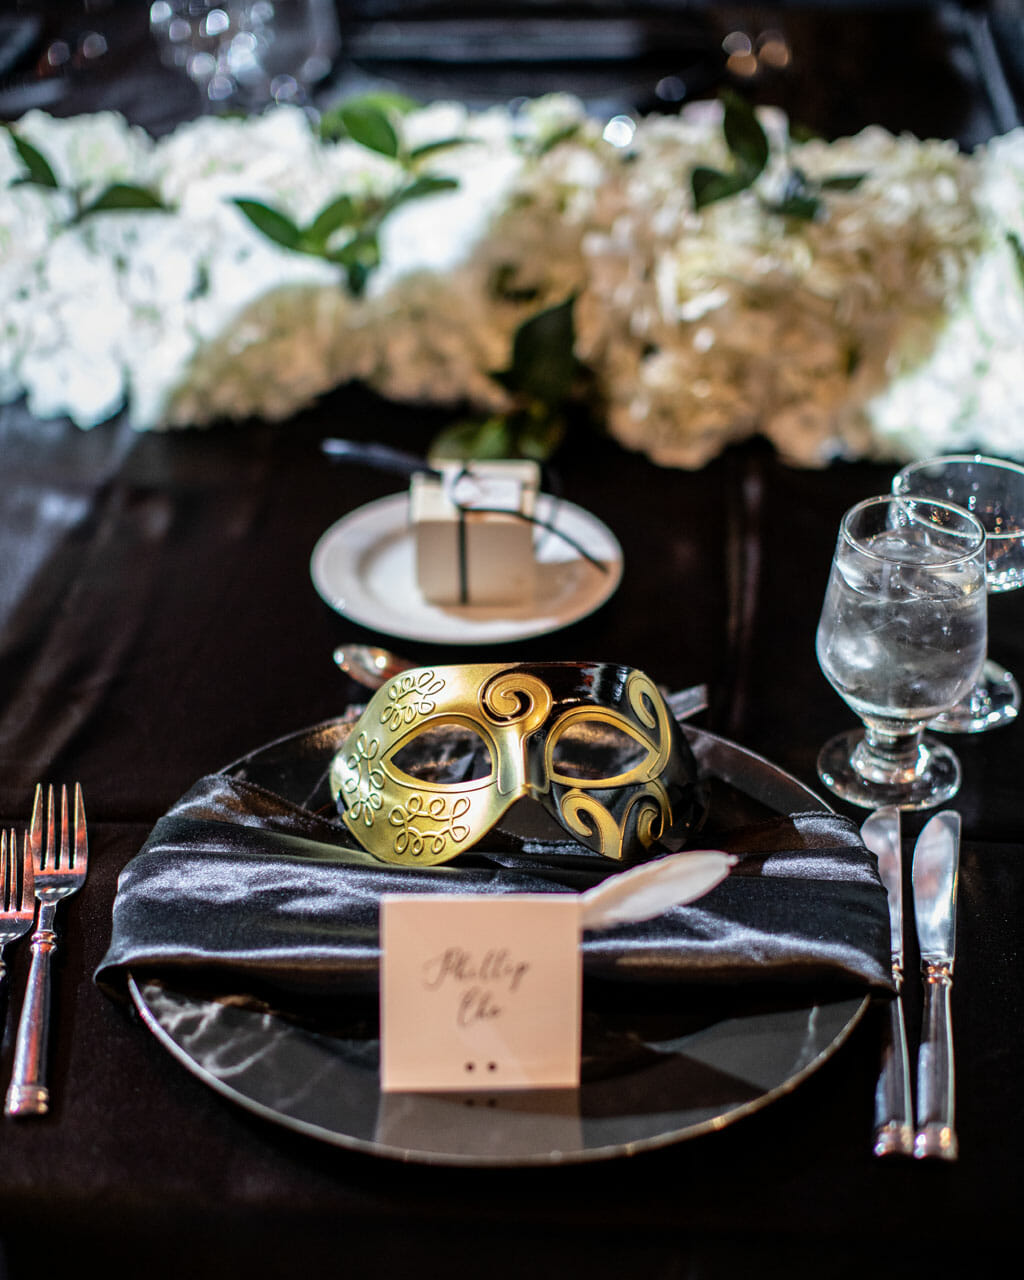 mardi gras themed wedding reception table setup with gold mask and black linen